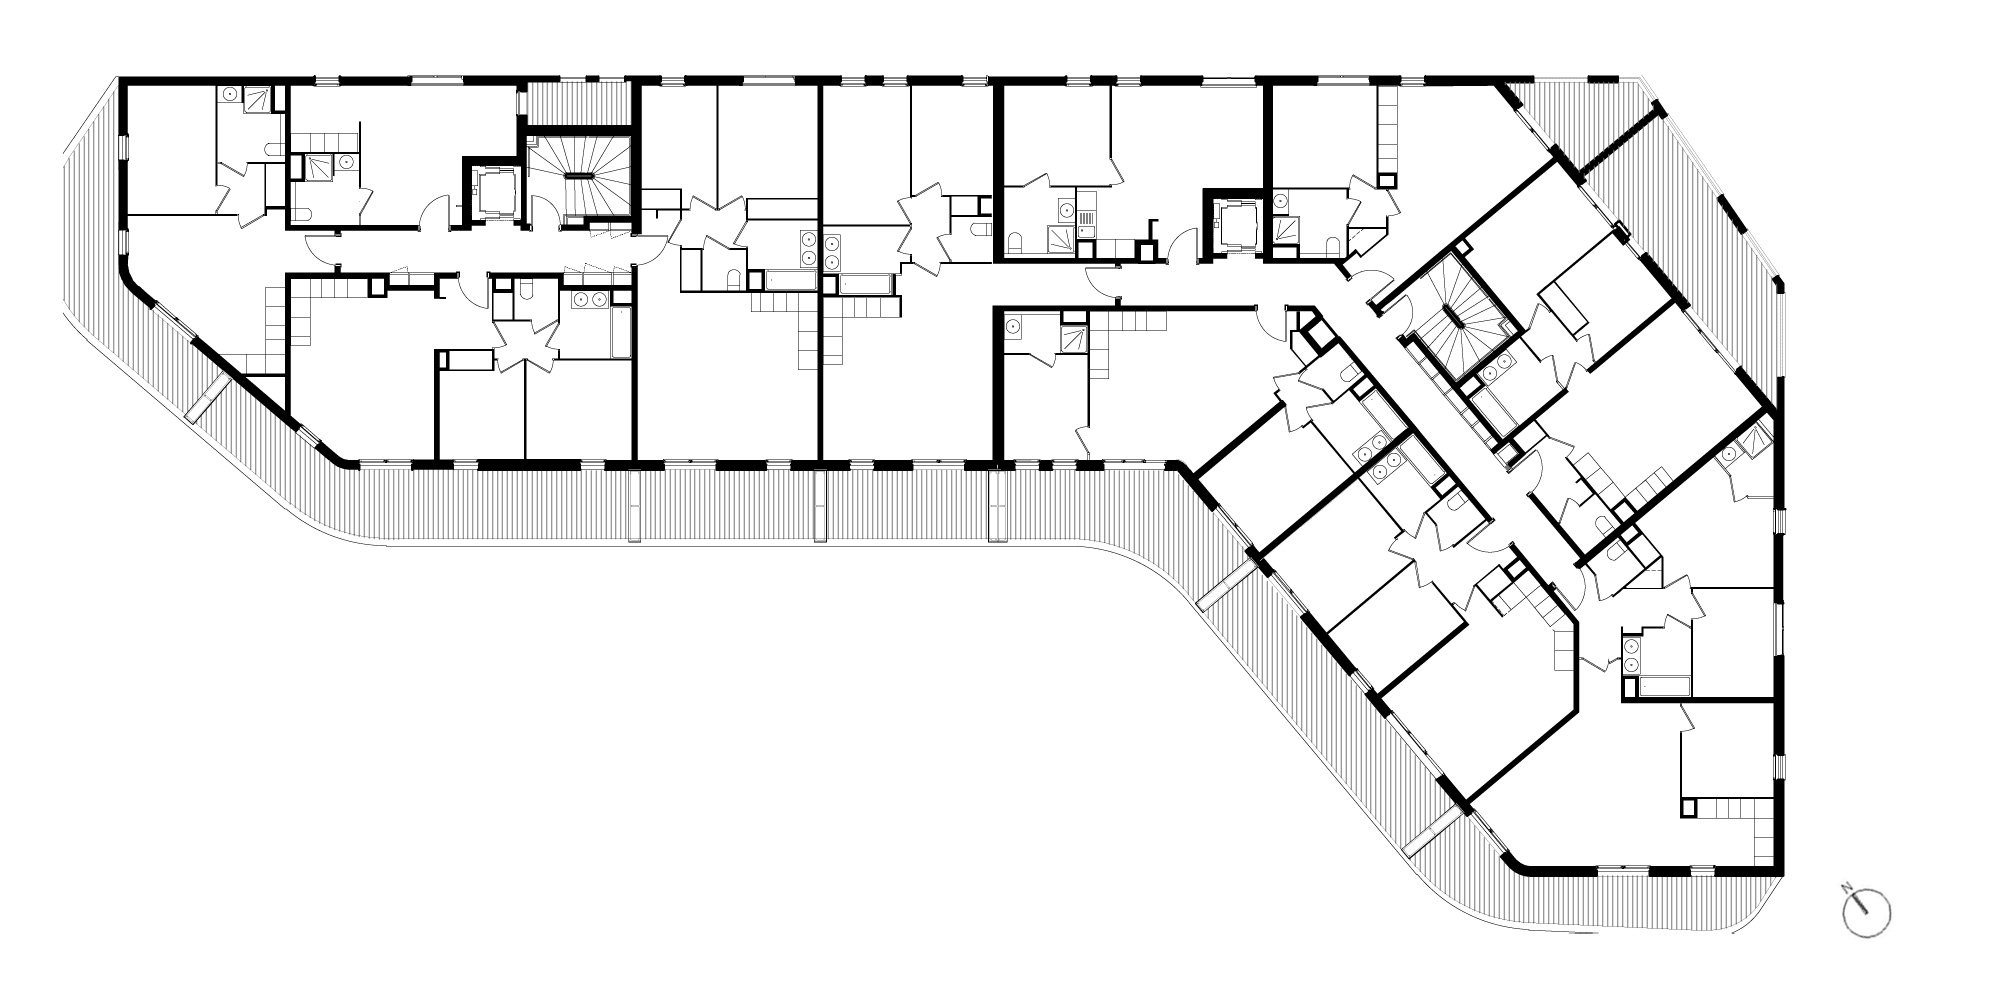 Second Floor Plan © PietriArchitectes